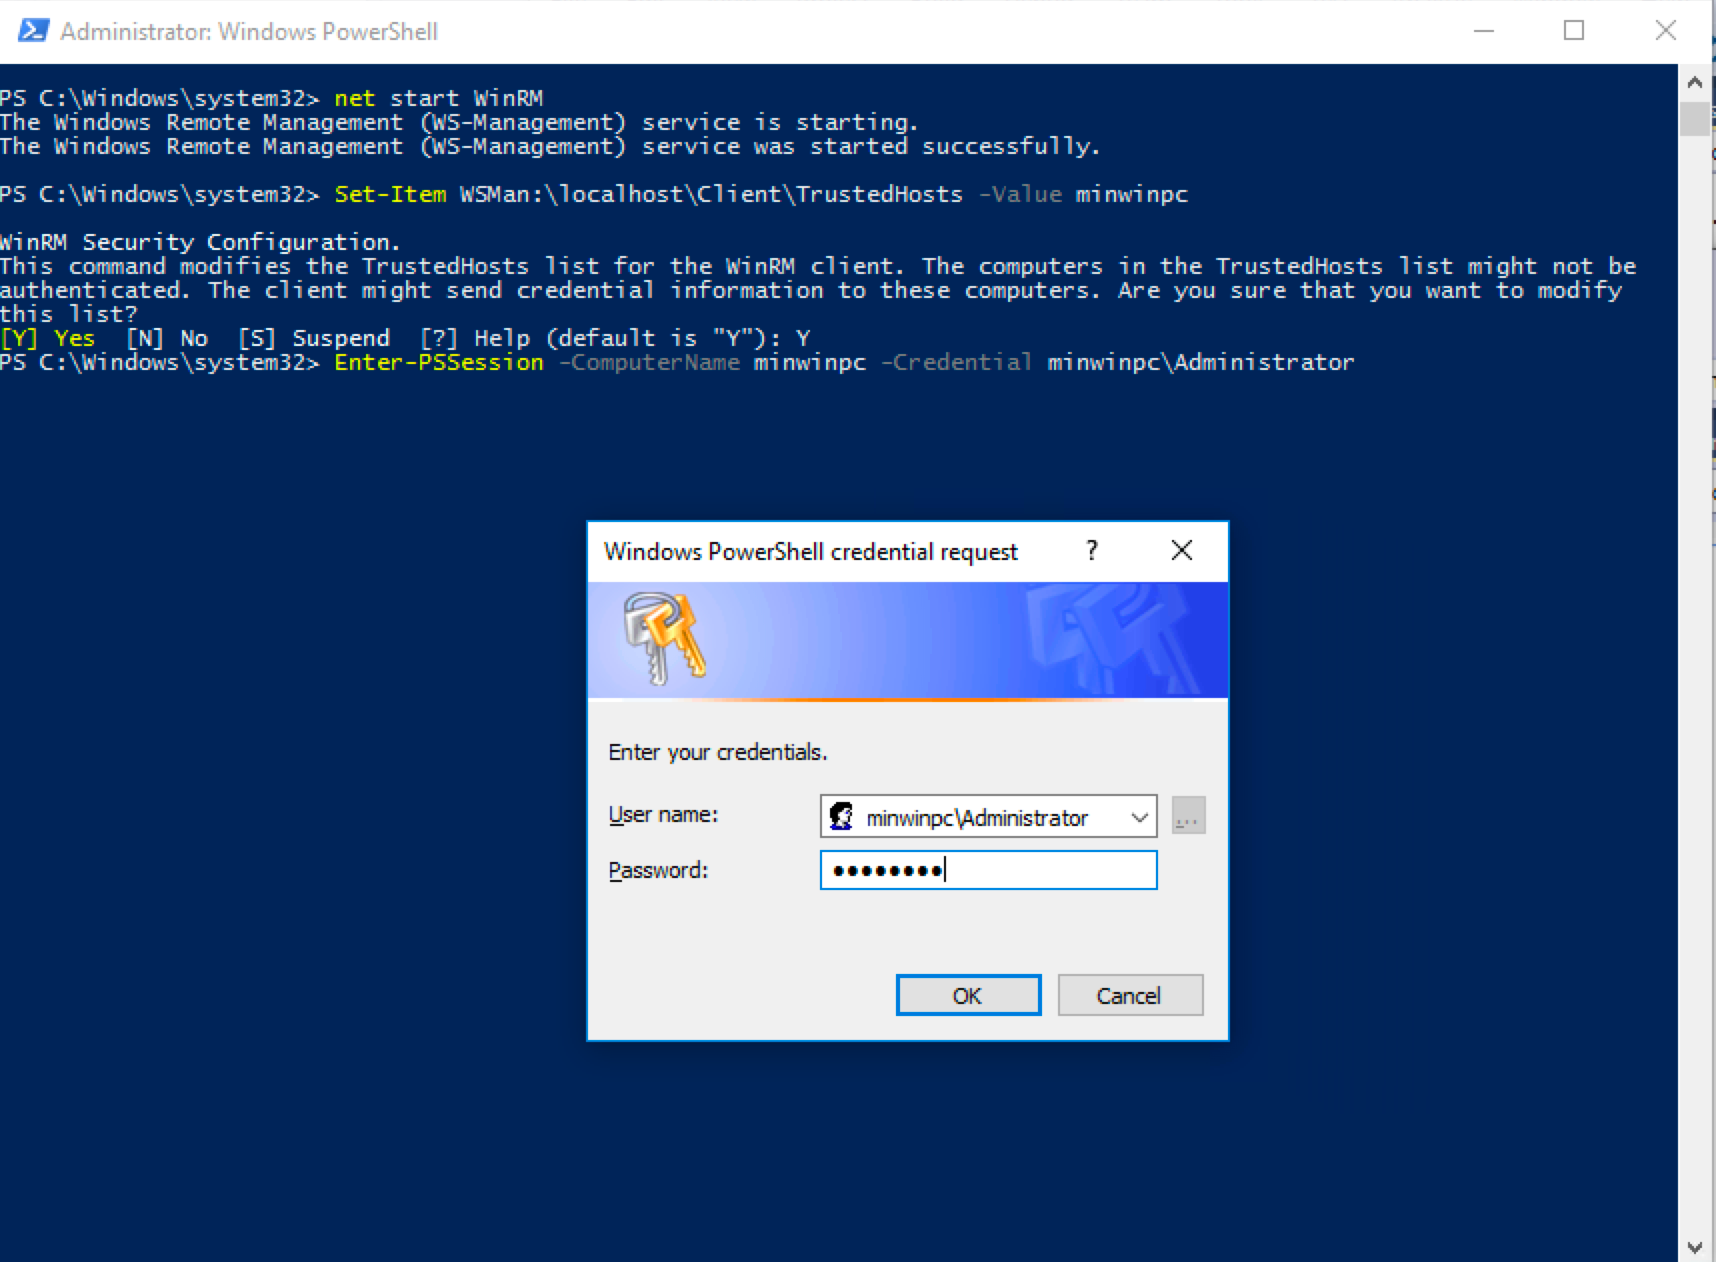 projects_Powershell_enter_session.png